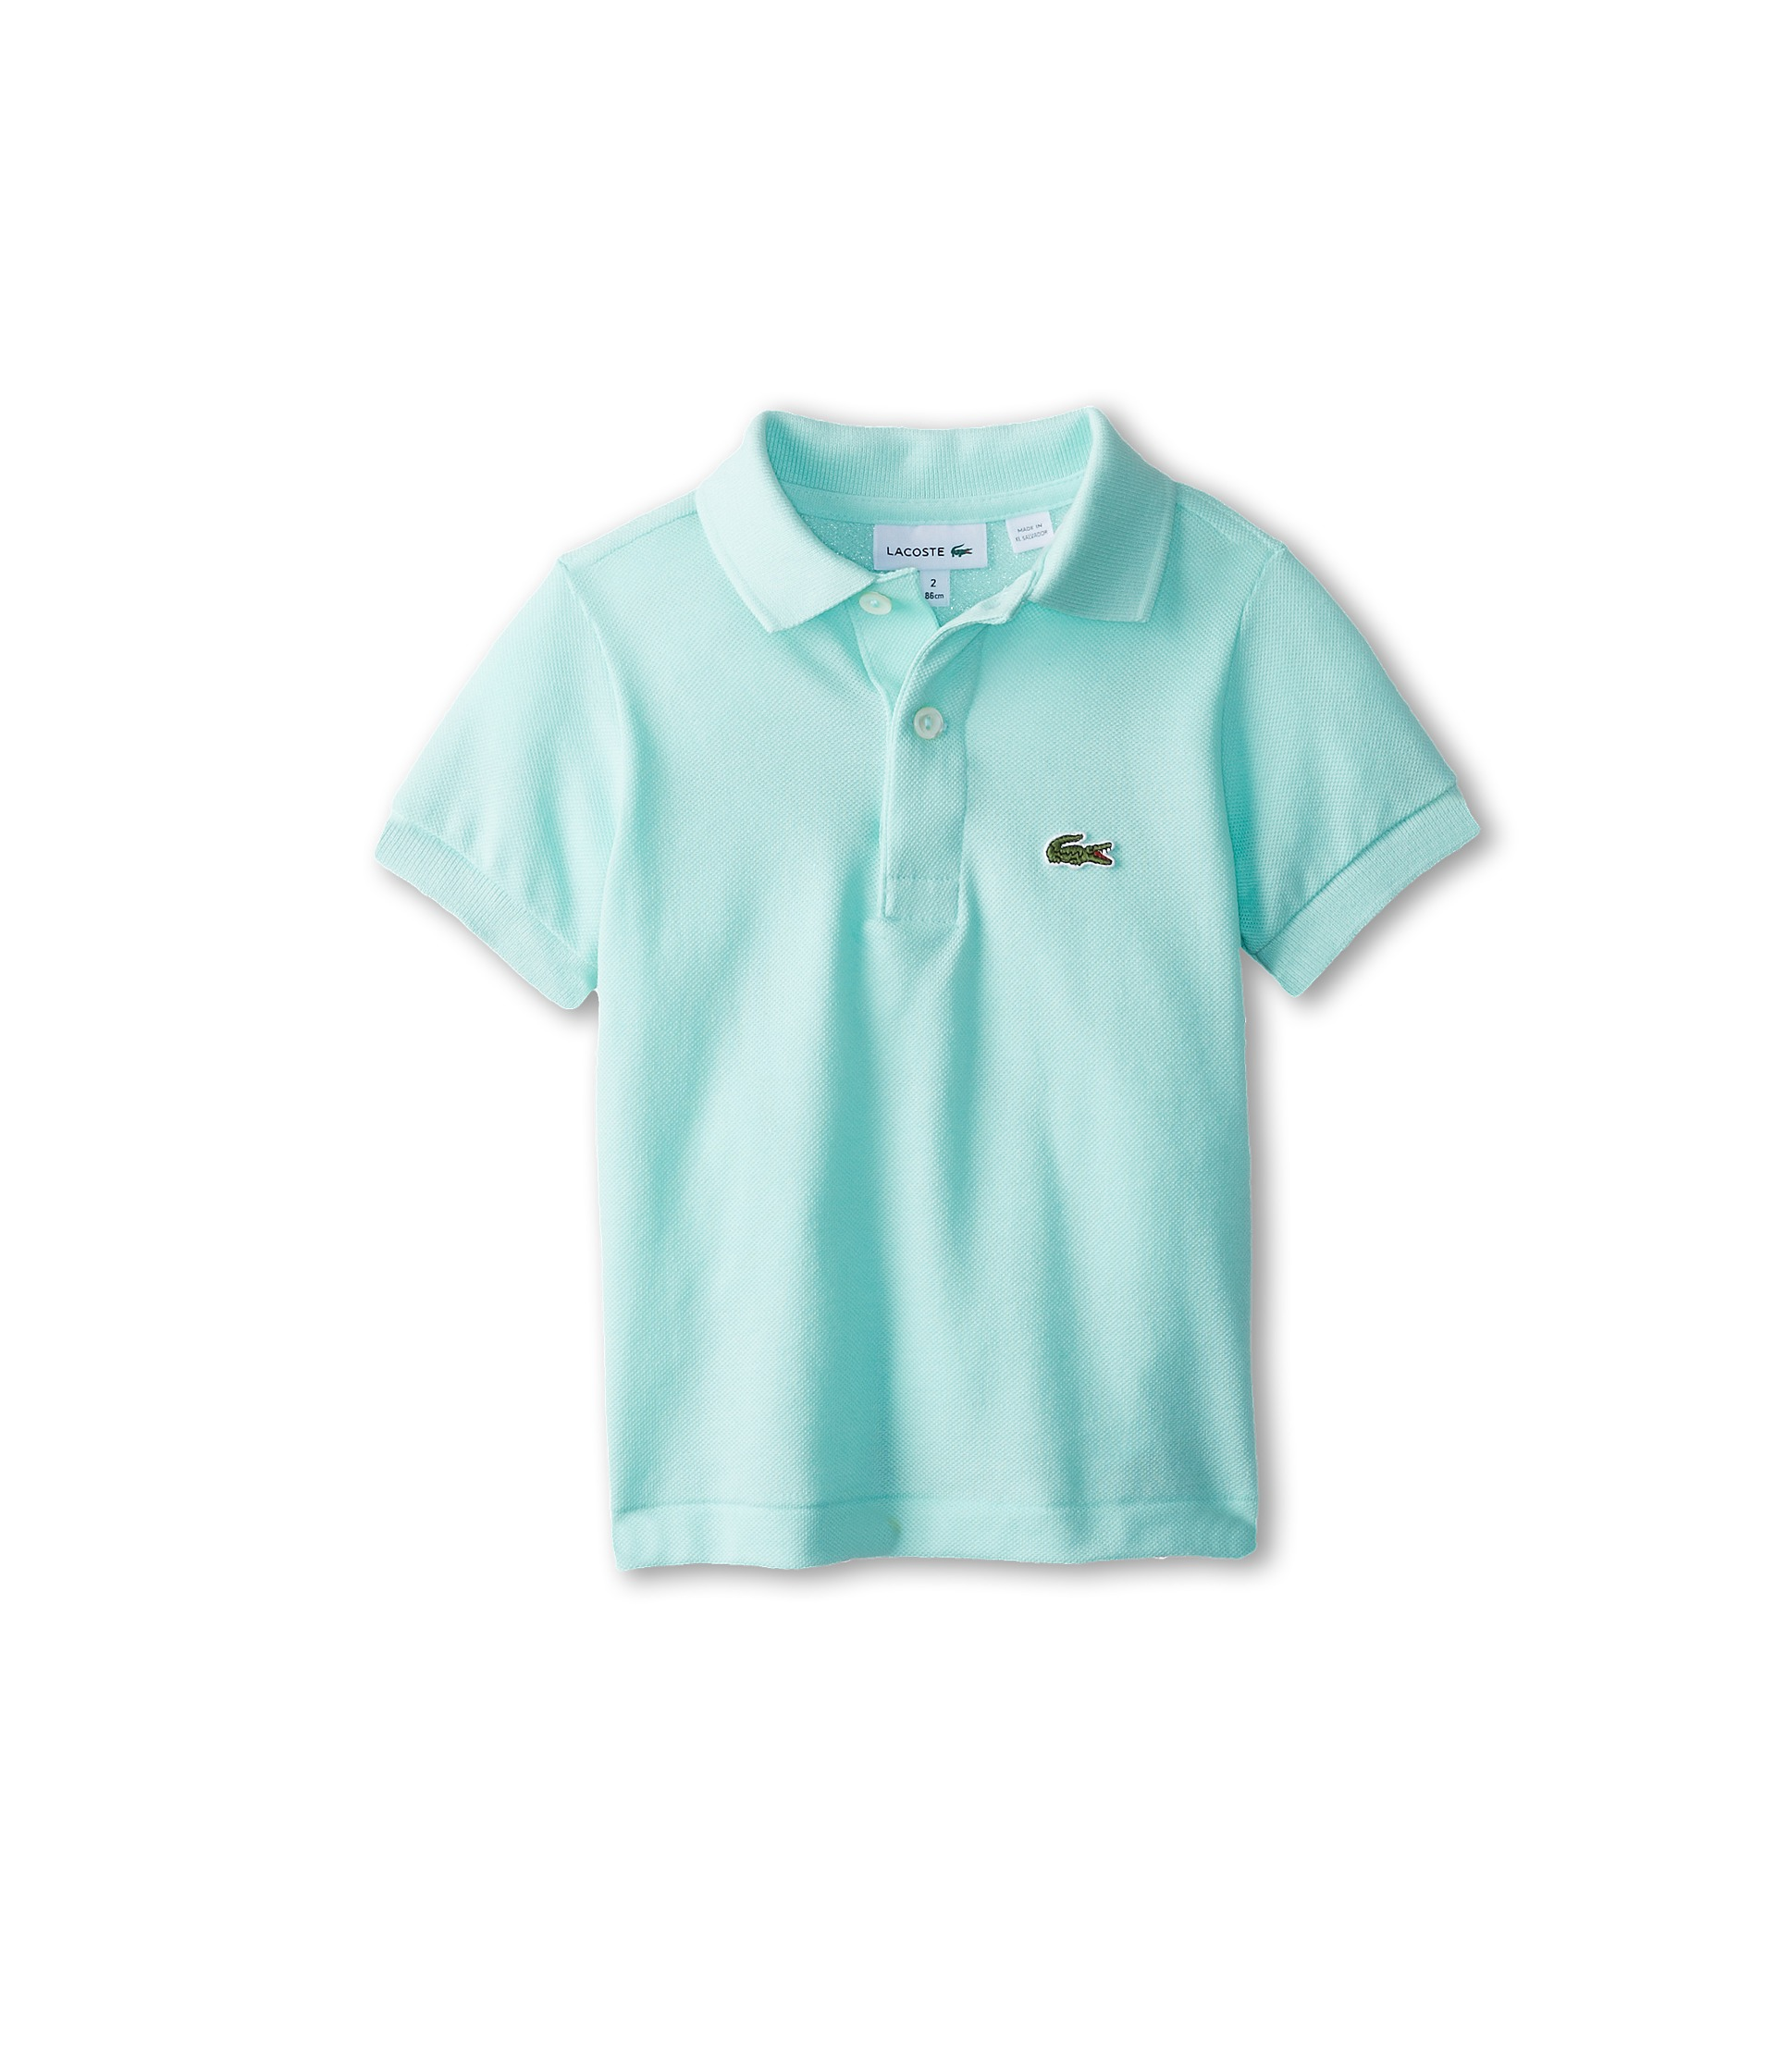 Lacoste kids boys short sleeve classic pique polo shirt for Toddler boys polo shirts